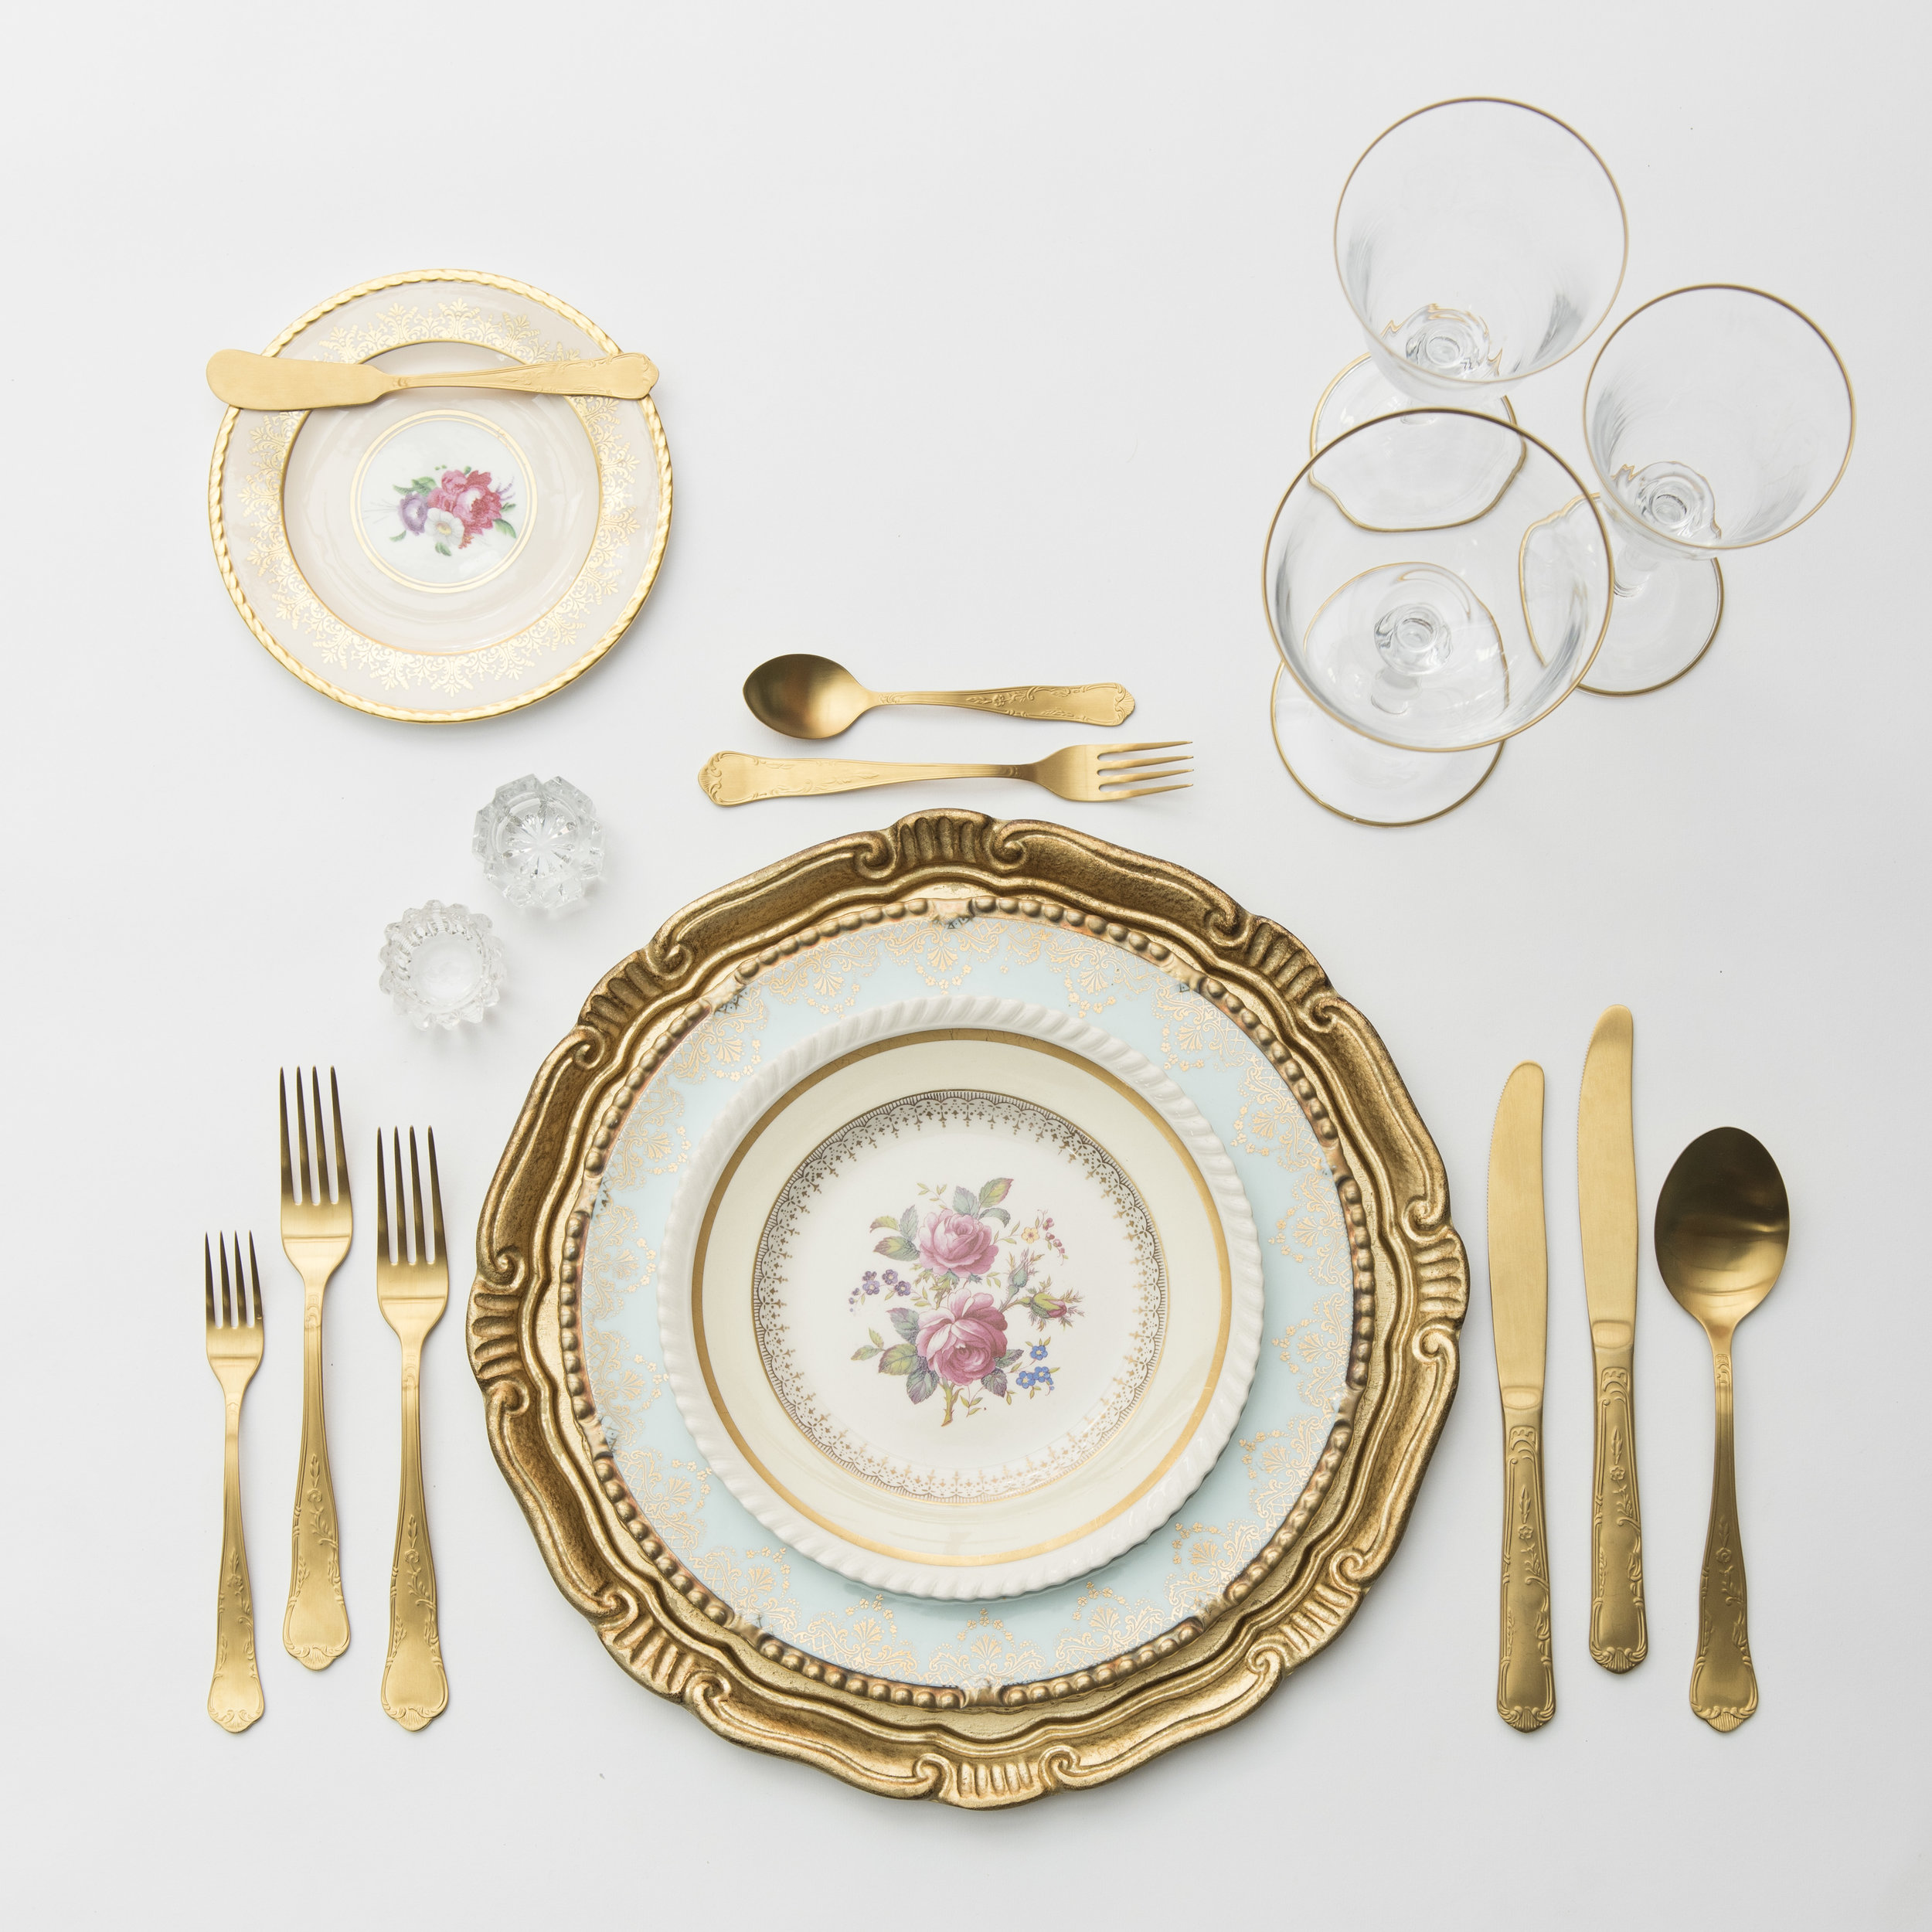 RENT: Florentine Charger in Gold + Blue/White Botanicals Vintage China + Chateau Flatware in Matte Gold + Chloe 24k Gold Rimmed Stemware + Antique Crystal Salt Cellars  SHOP: Florentine Charger in Gold + Chloe 24k Gold Rimmed Stemware